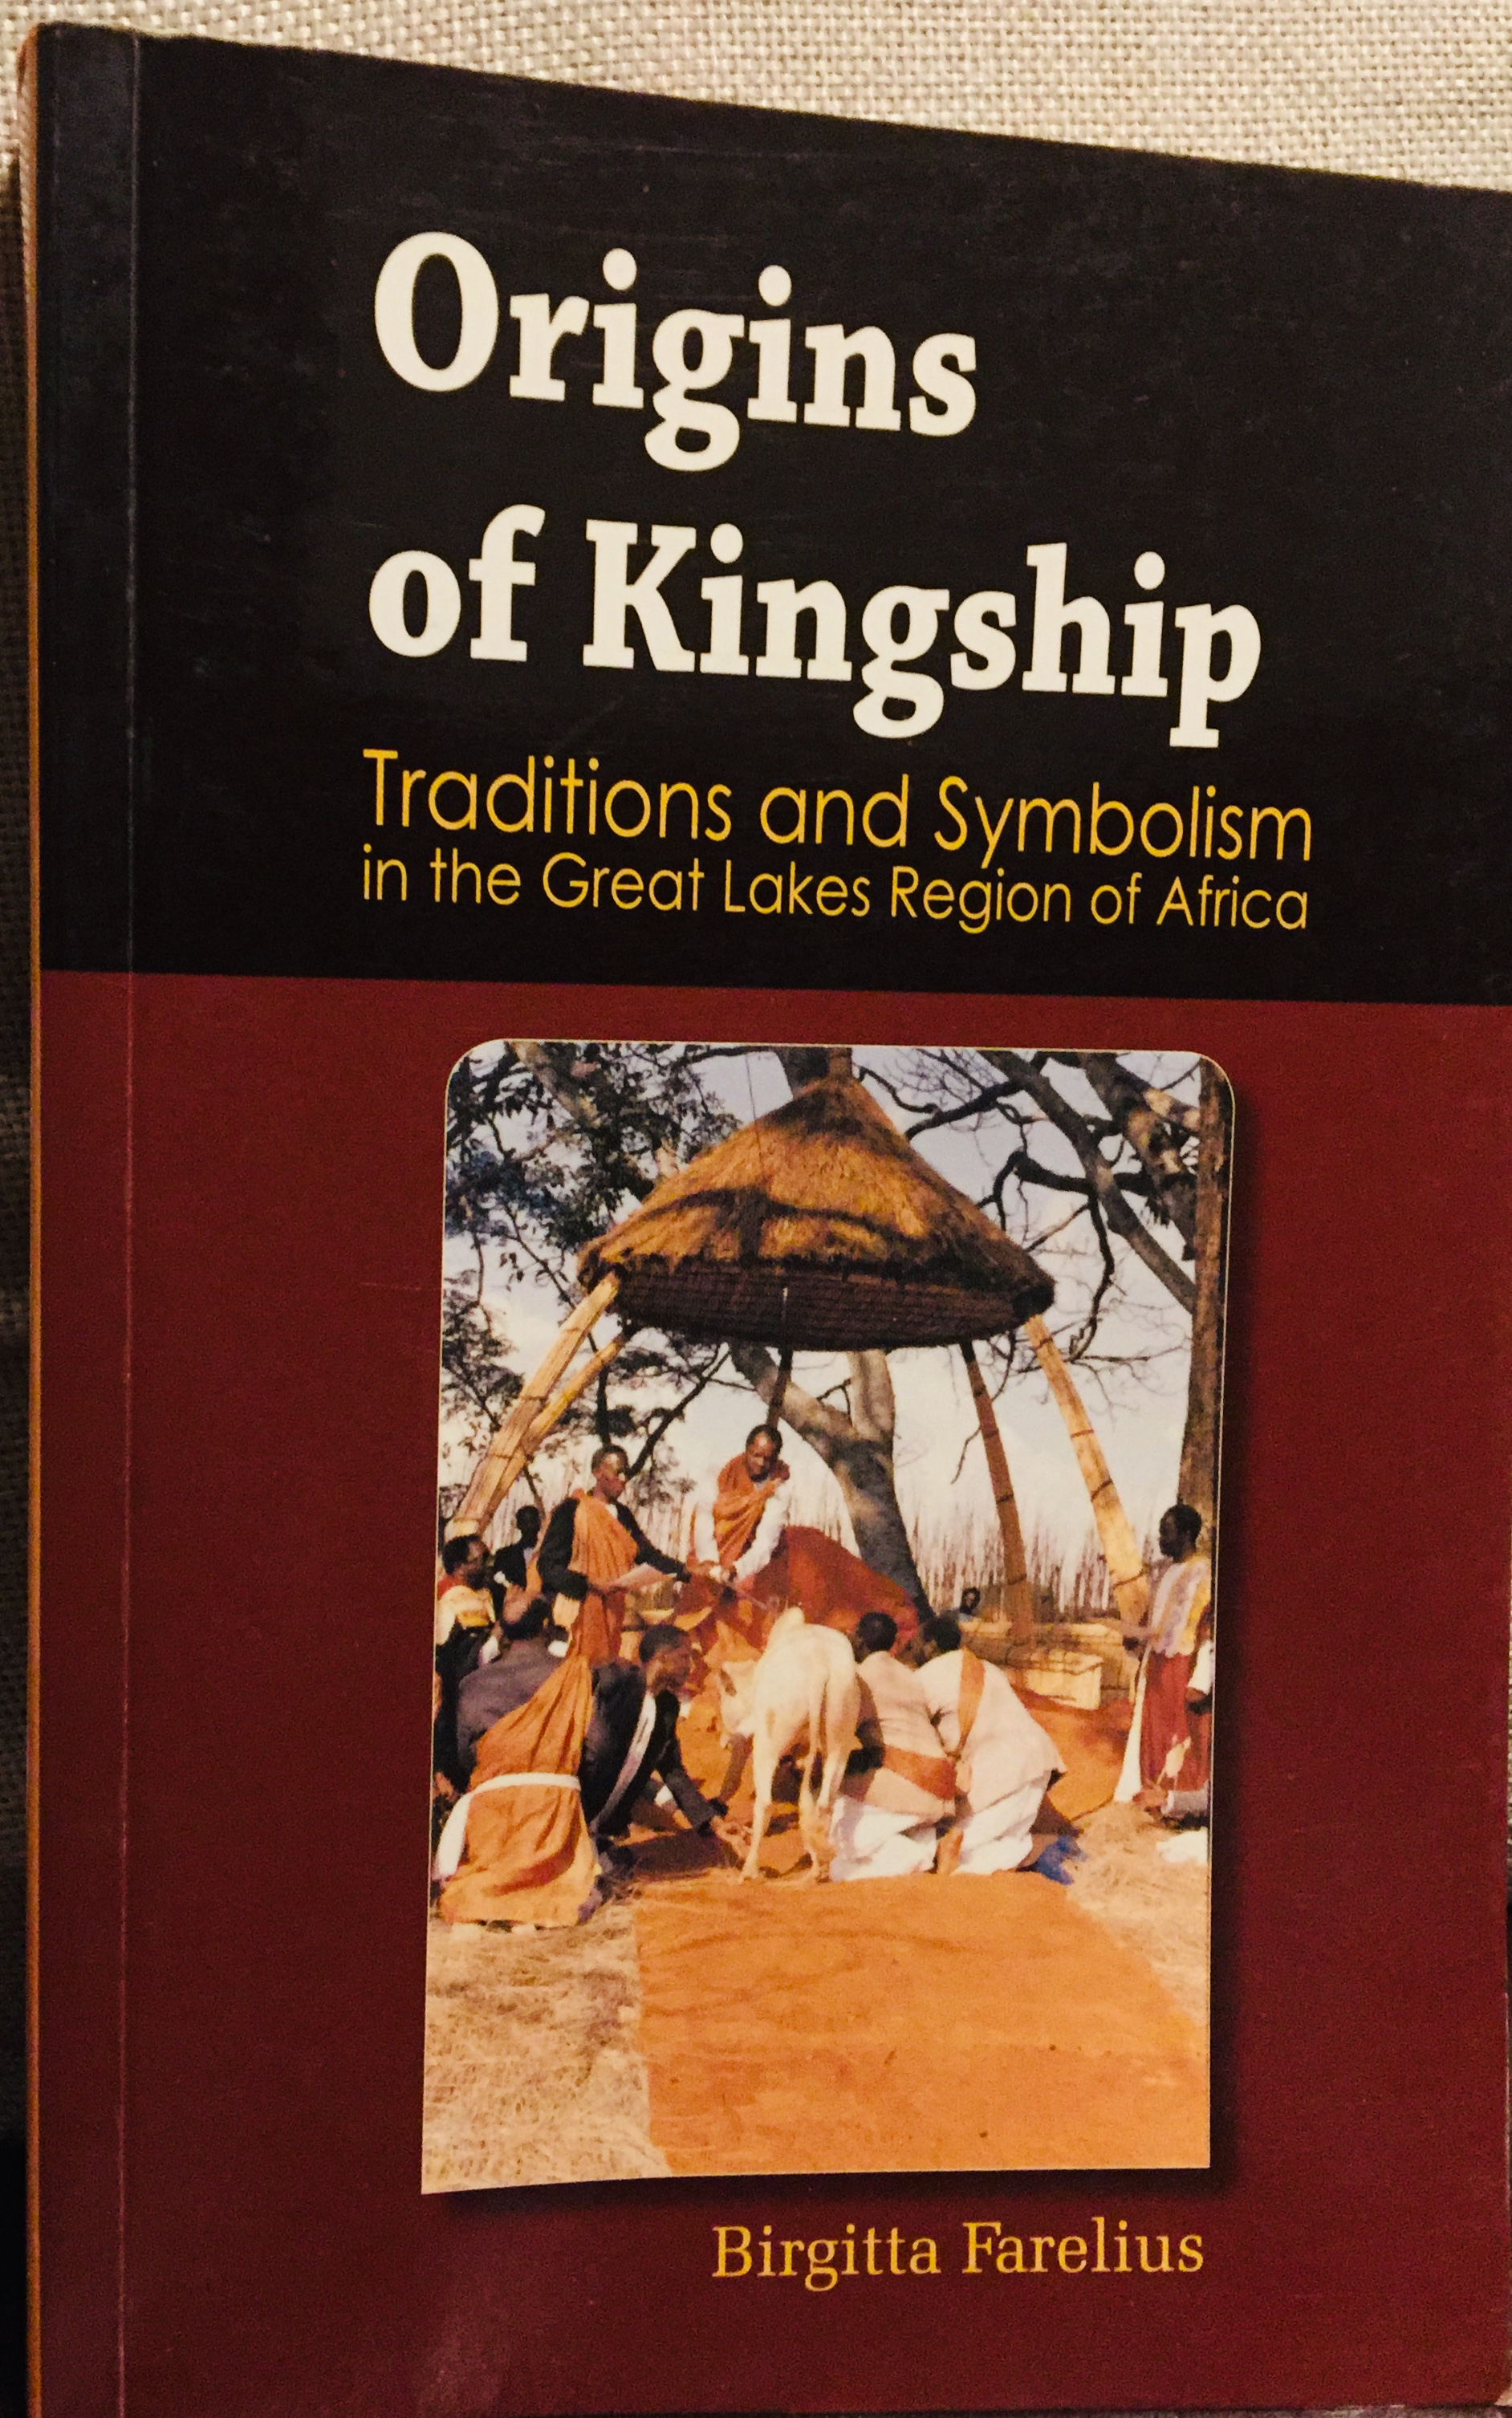 Origins of Kingship Traditions and Symbolism in the Great Lakes Region of Africa – By Birgitta Farelius (2008)